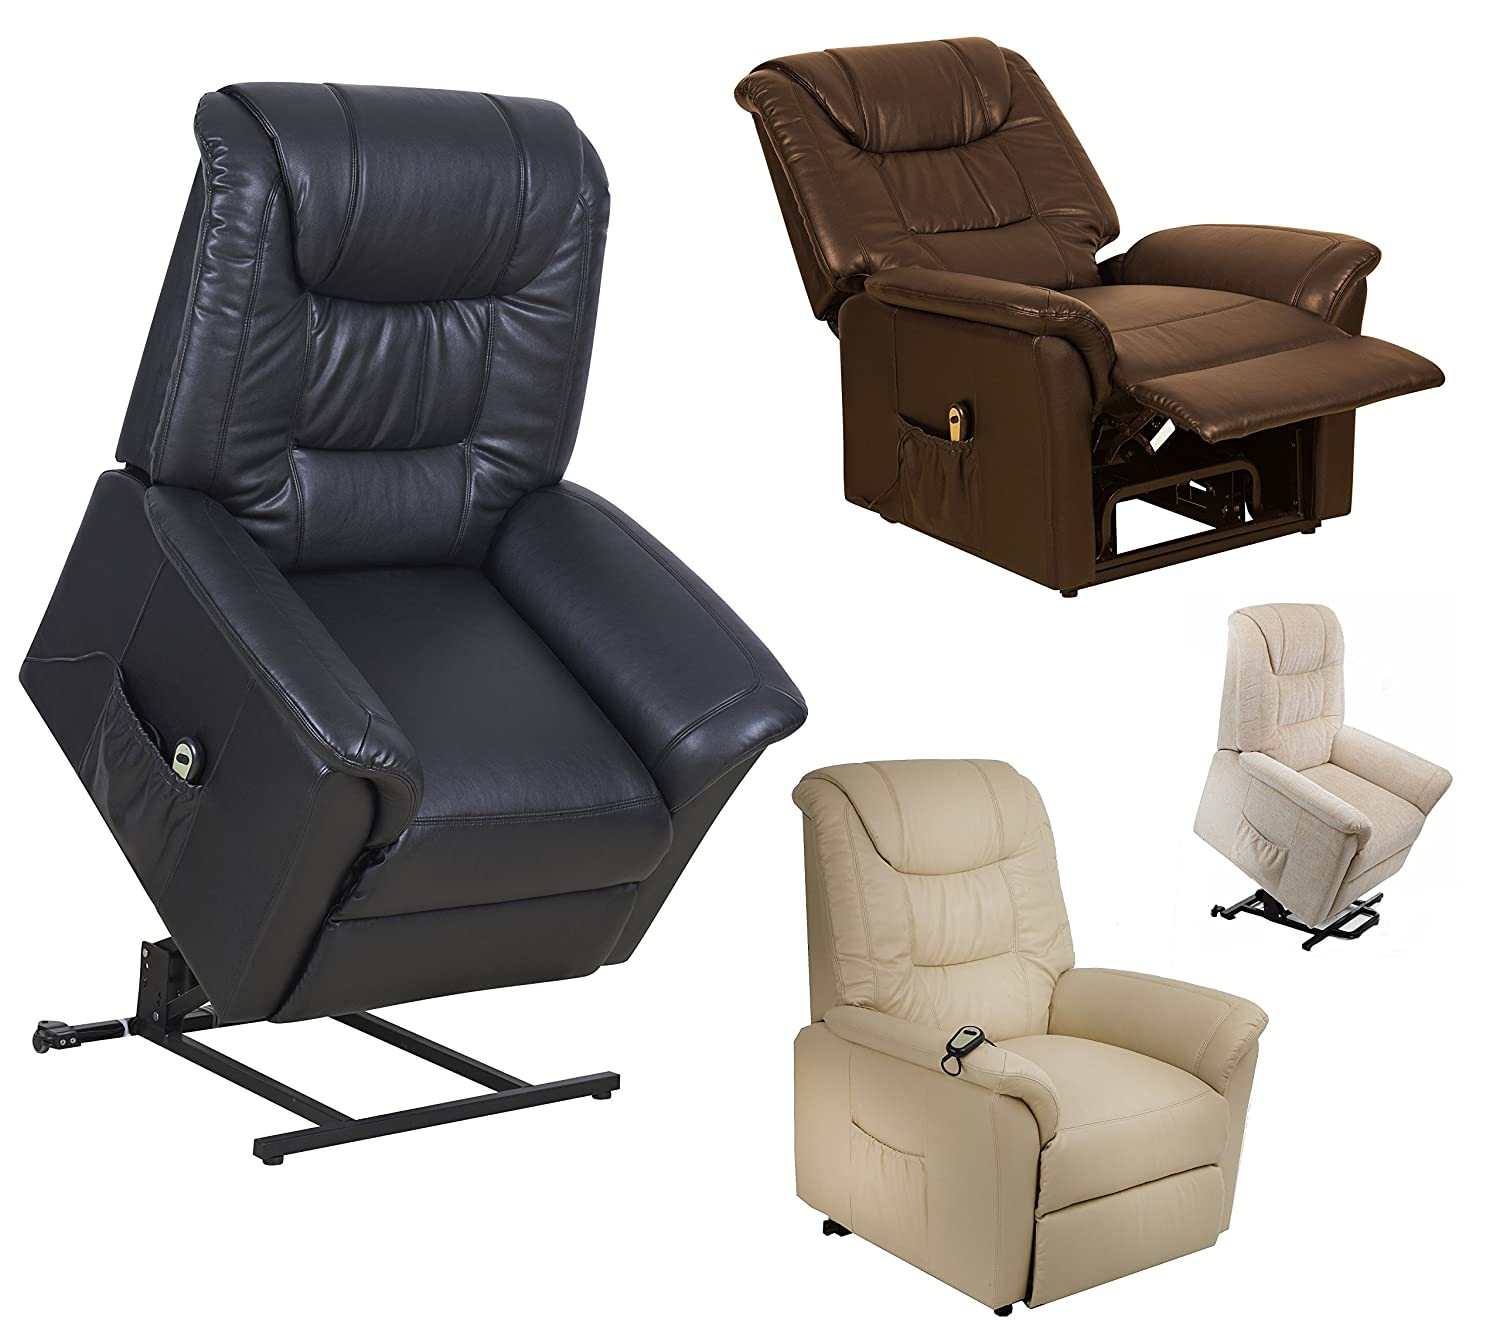 Riva Dual motor electric riser and recliner chair - choice of colours (Brown) rise and recline mobility lift chair Amazon.co.uk Kitchen u0026 Home  sc 1 st  Amazon UK & Riva Dual motor electric riser and recliner chair - choice of ... islam-shia.org